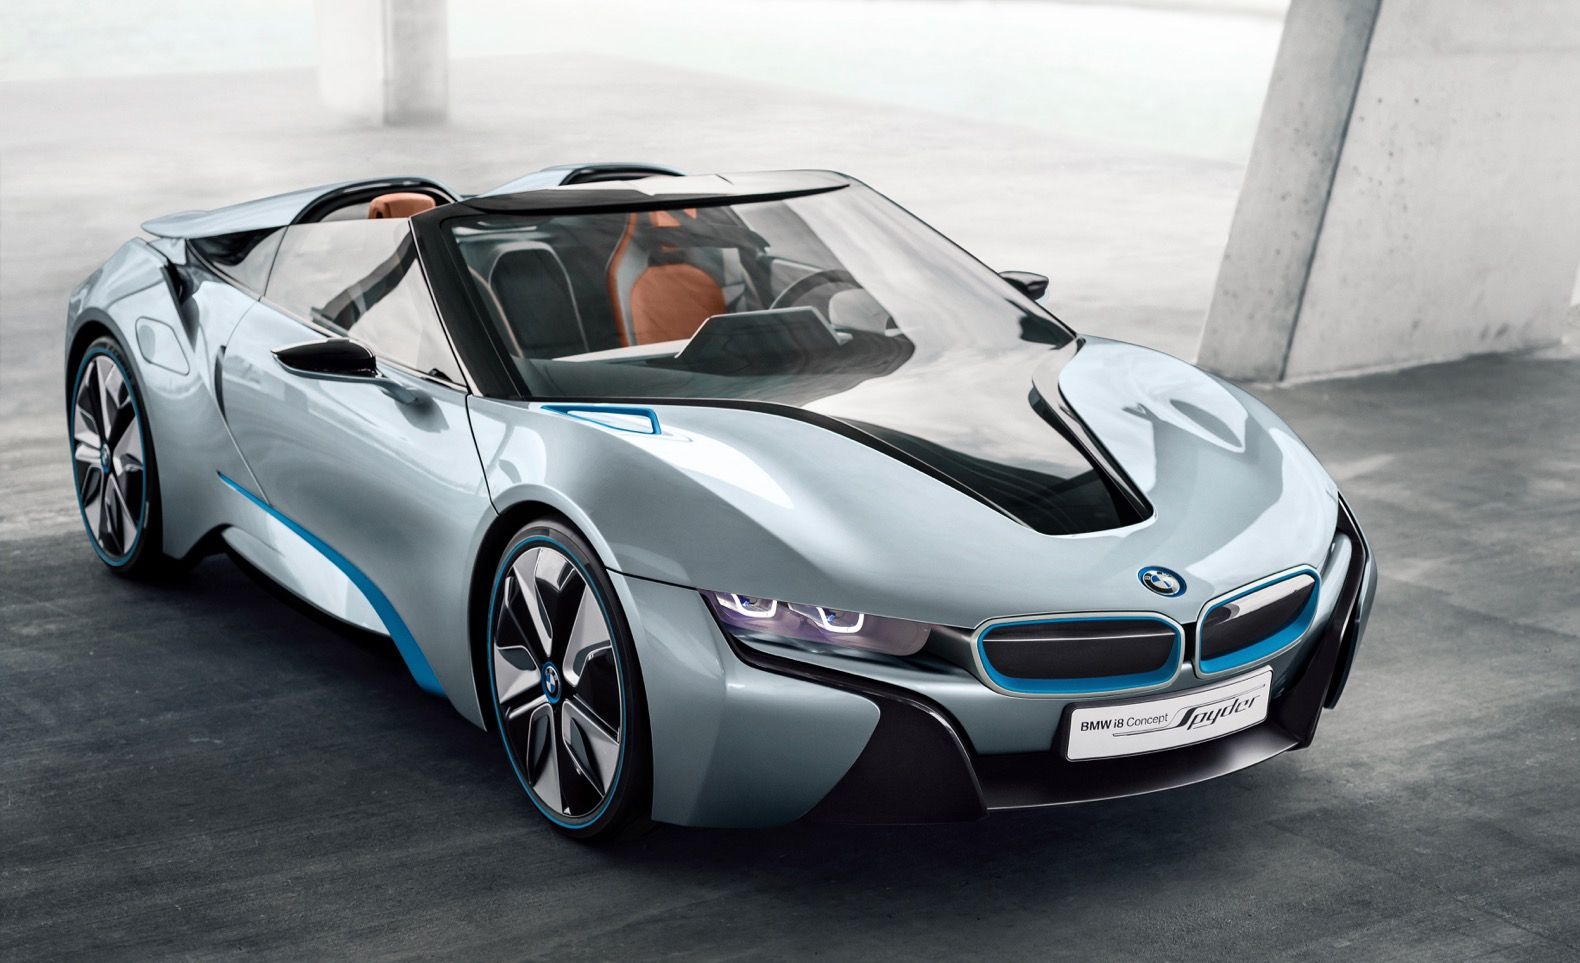 After Three Long Years The Bmw I8 Spyder Is Finally About To Become A Reality